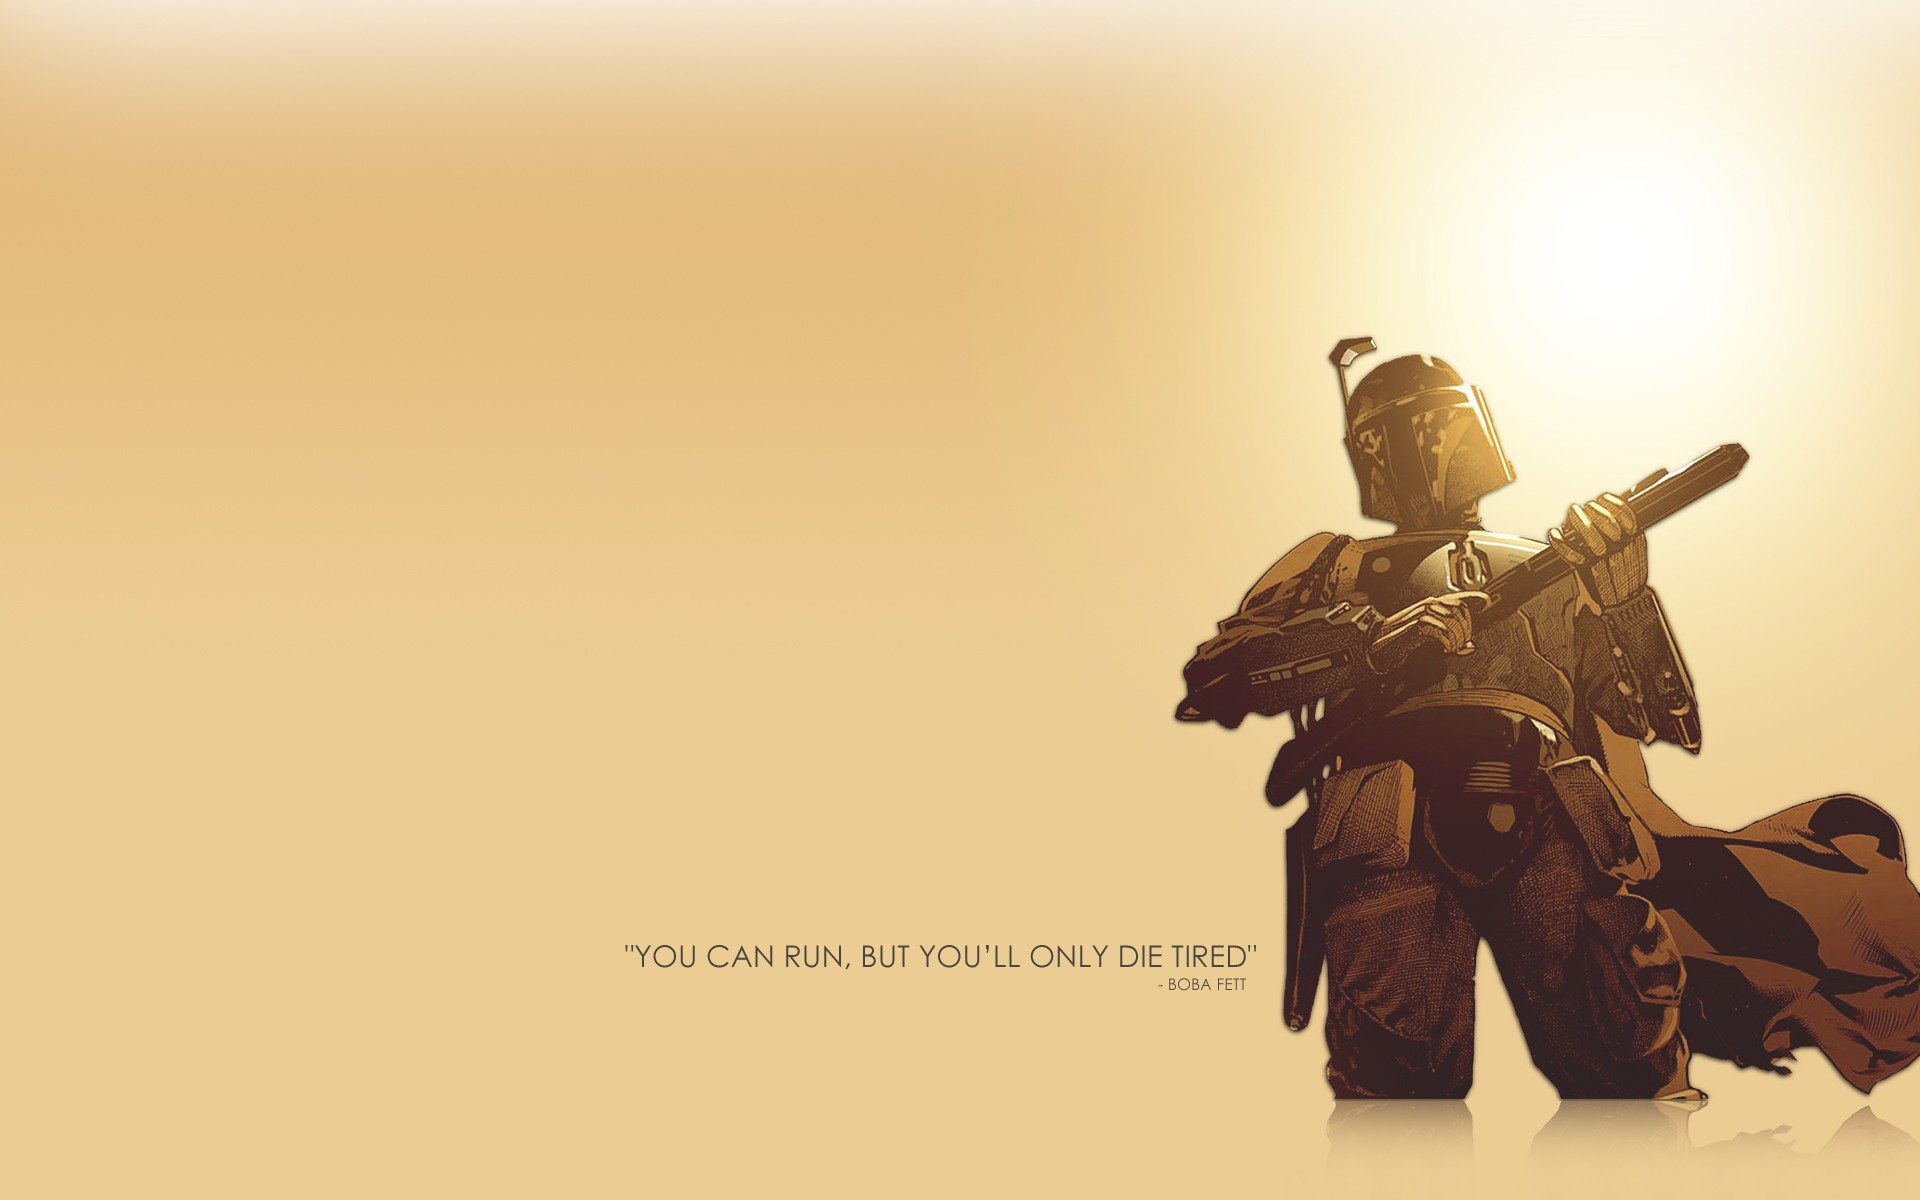 Boba Fett Star Wars Wallpaper LOLd Wallpaper   Funny Pictures 1920x1200